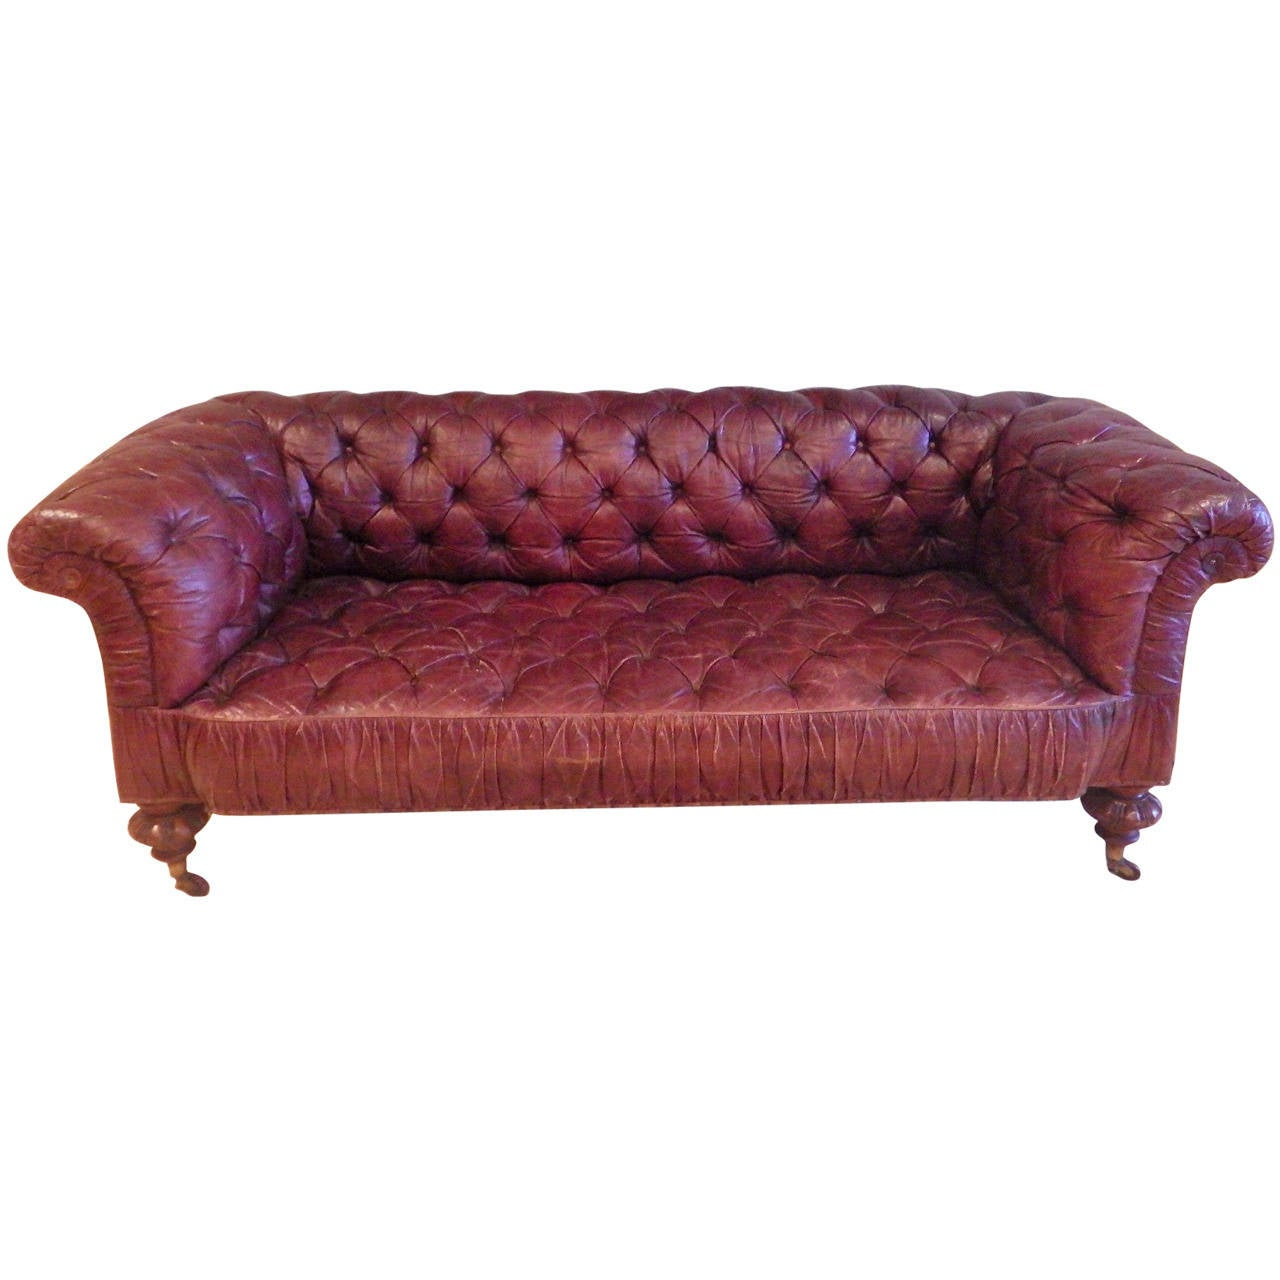 Victorian Leather Sofa Victorian Styled Leather Sofa By